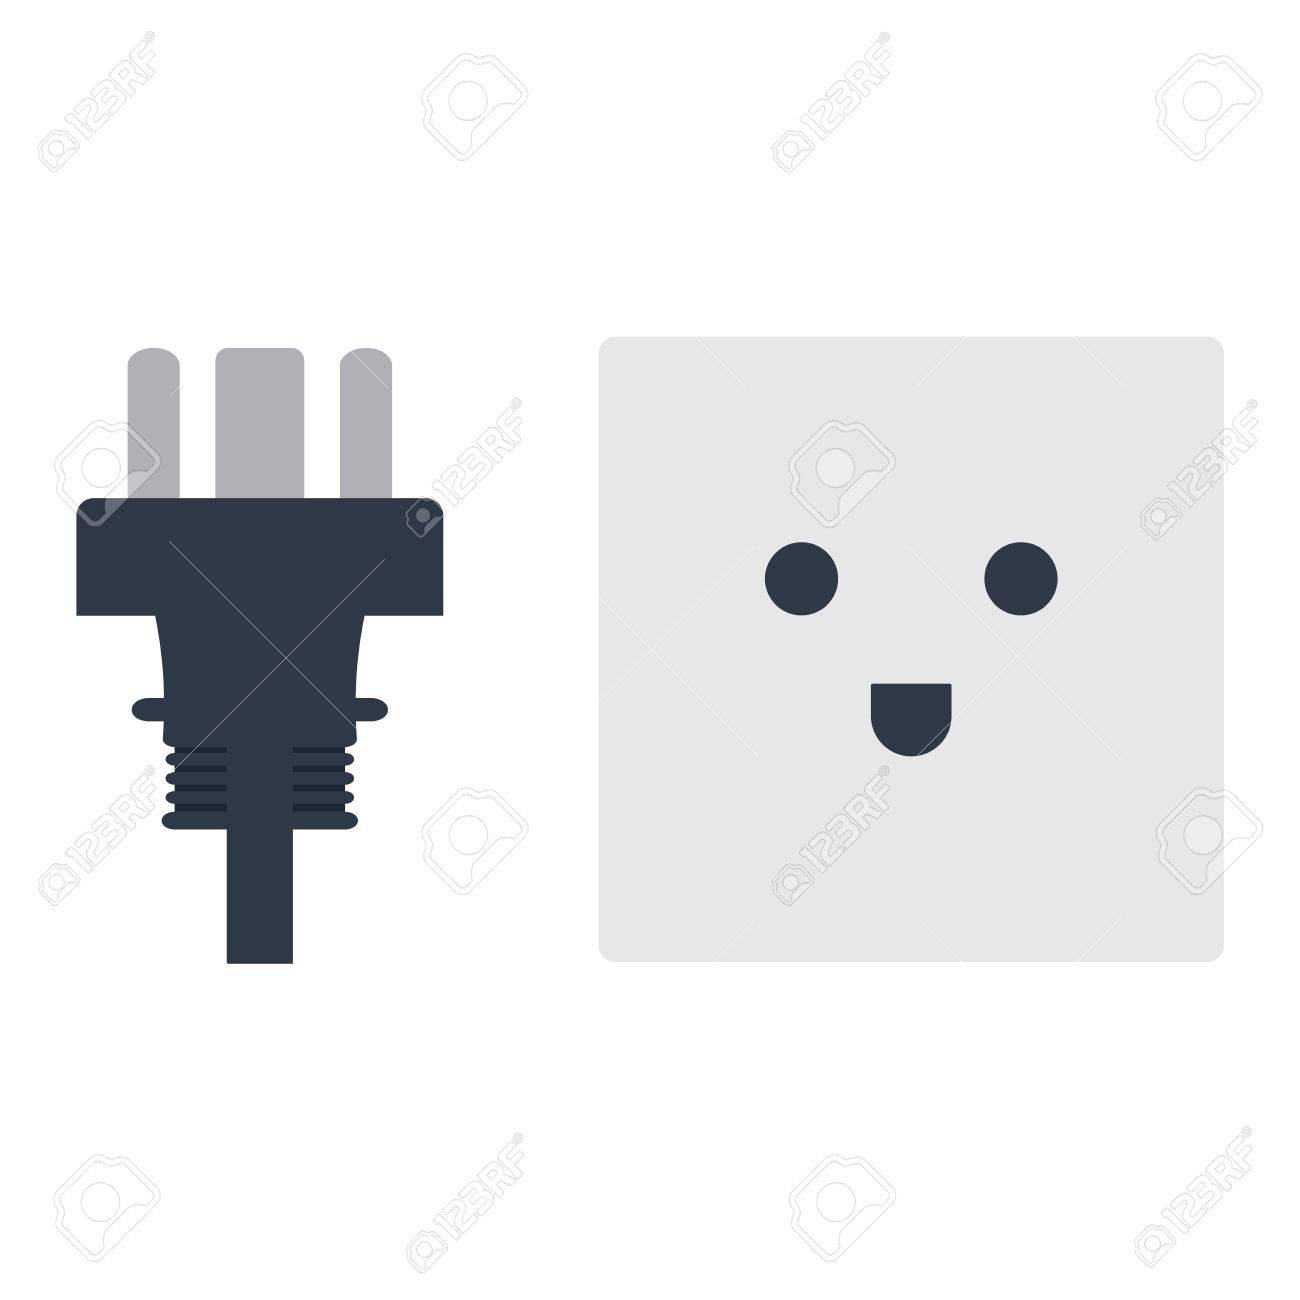 Electric Outlet Illustration On White Background. Energy Socket ...